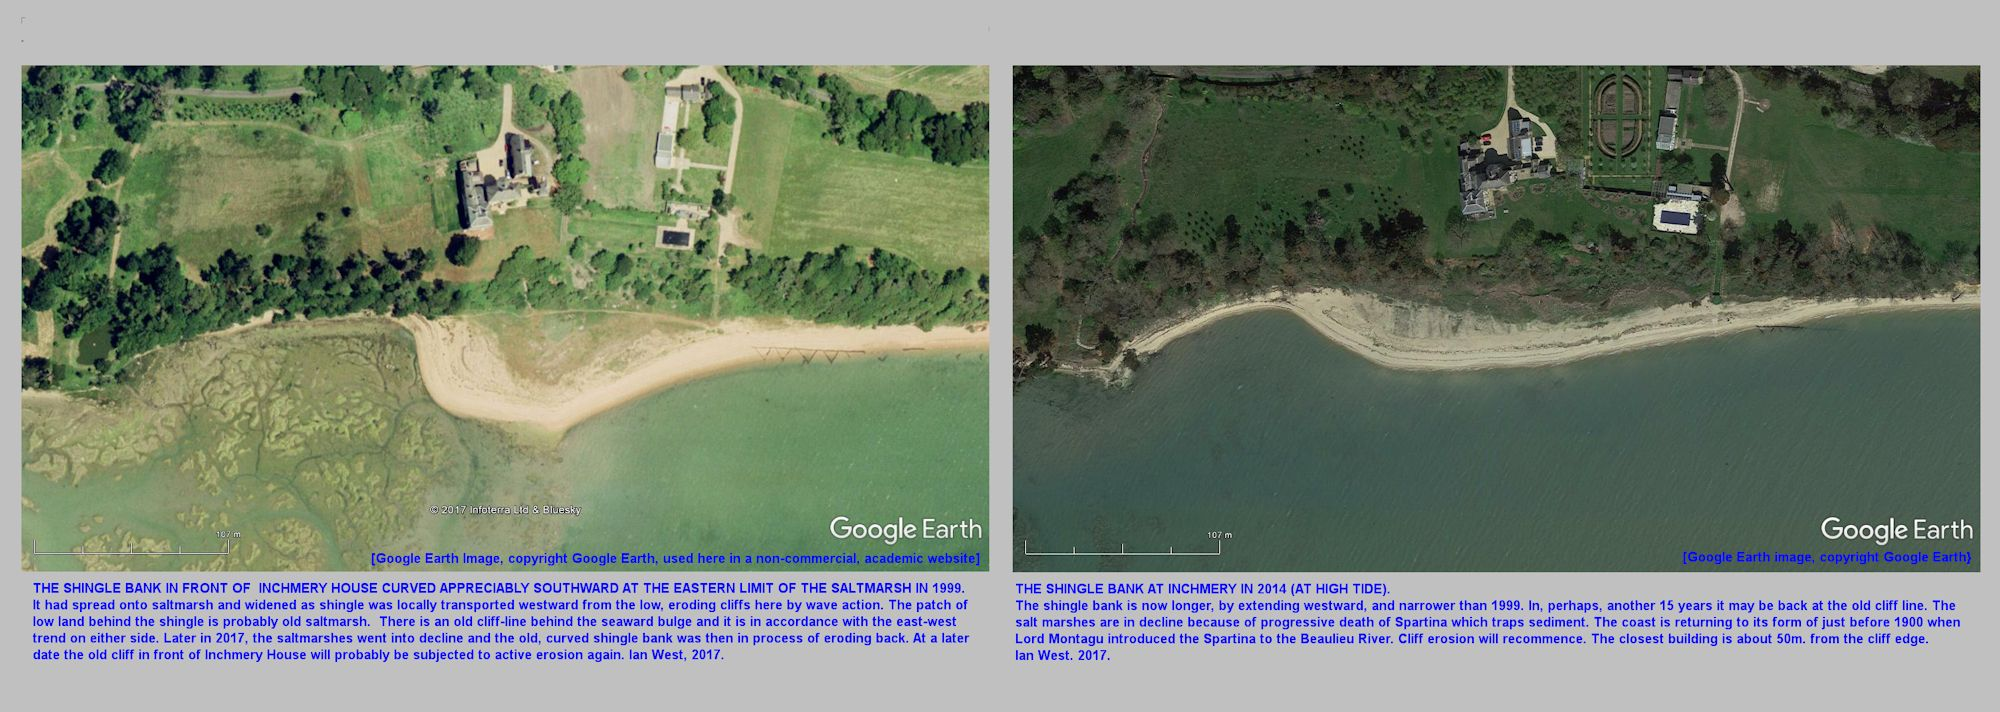 Changes in the curved shingle bank, Horseshoe Spit, at Inchmery House, west of Lepe Beach, Hampshire, from 1999 to 2014 as shown by GE